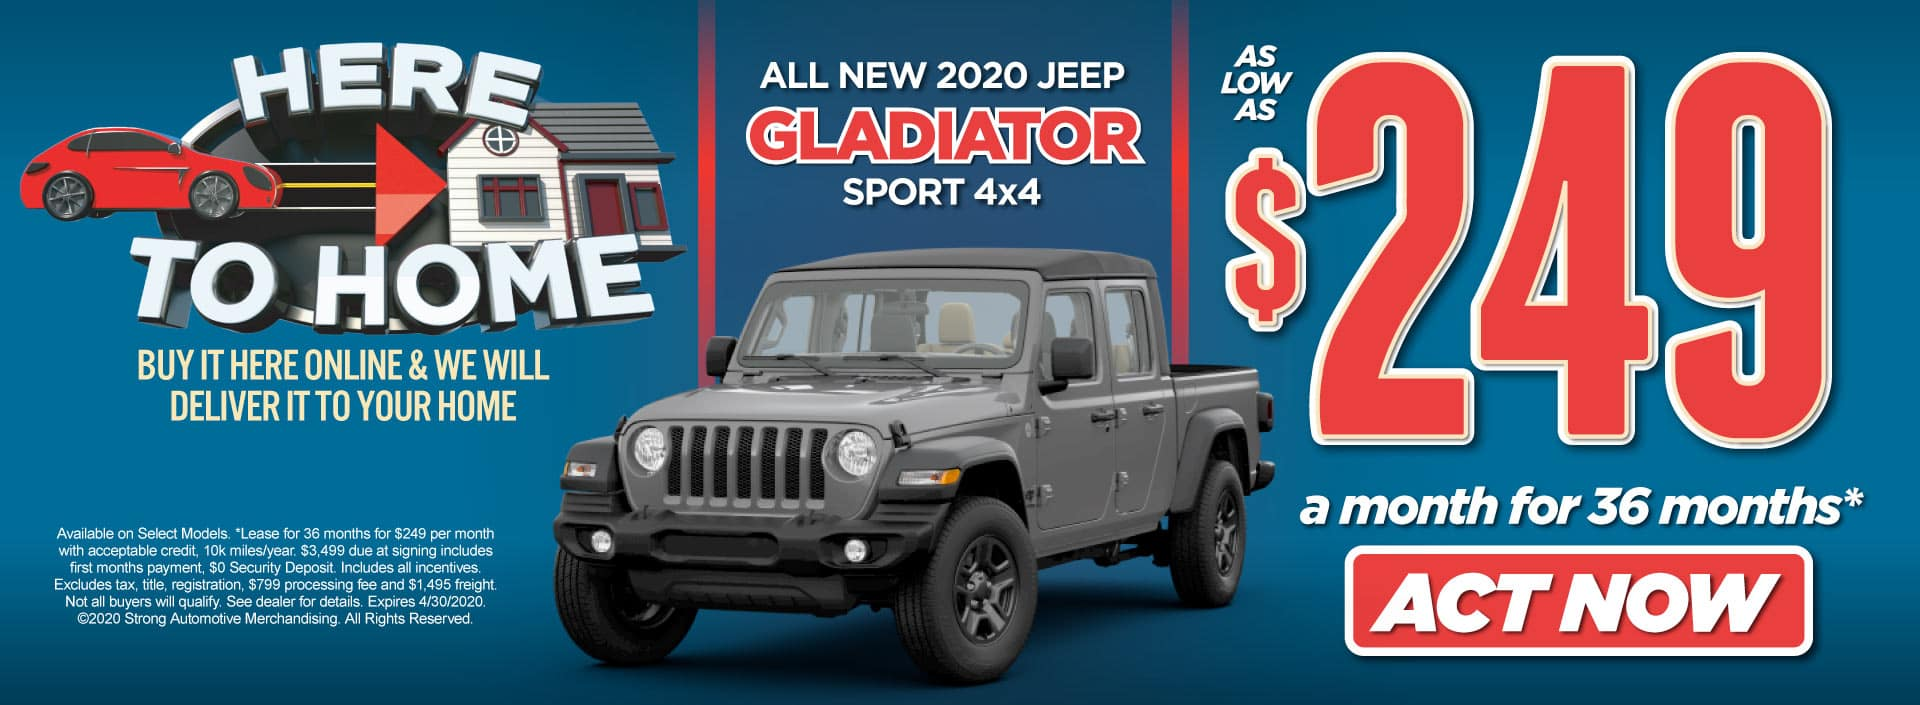 New 2020 Jeep Gladiator Special Act Now